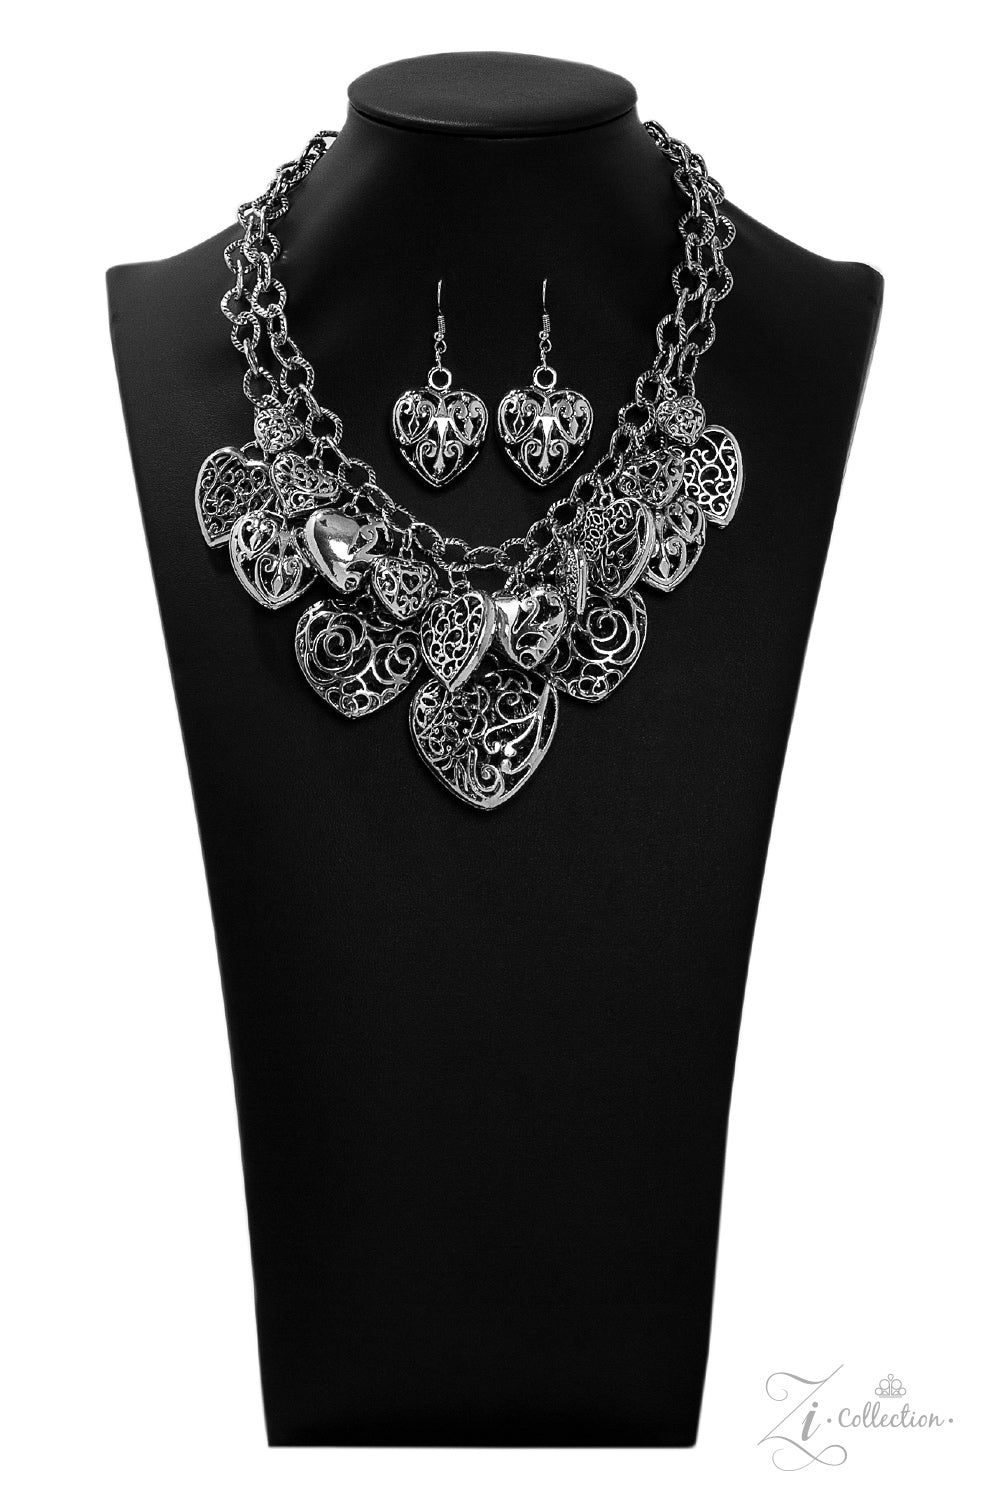 Cherish - Silver Layers with Filigree Heart Charms Necklace - 2019 Zi Collection